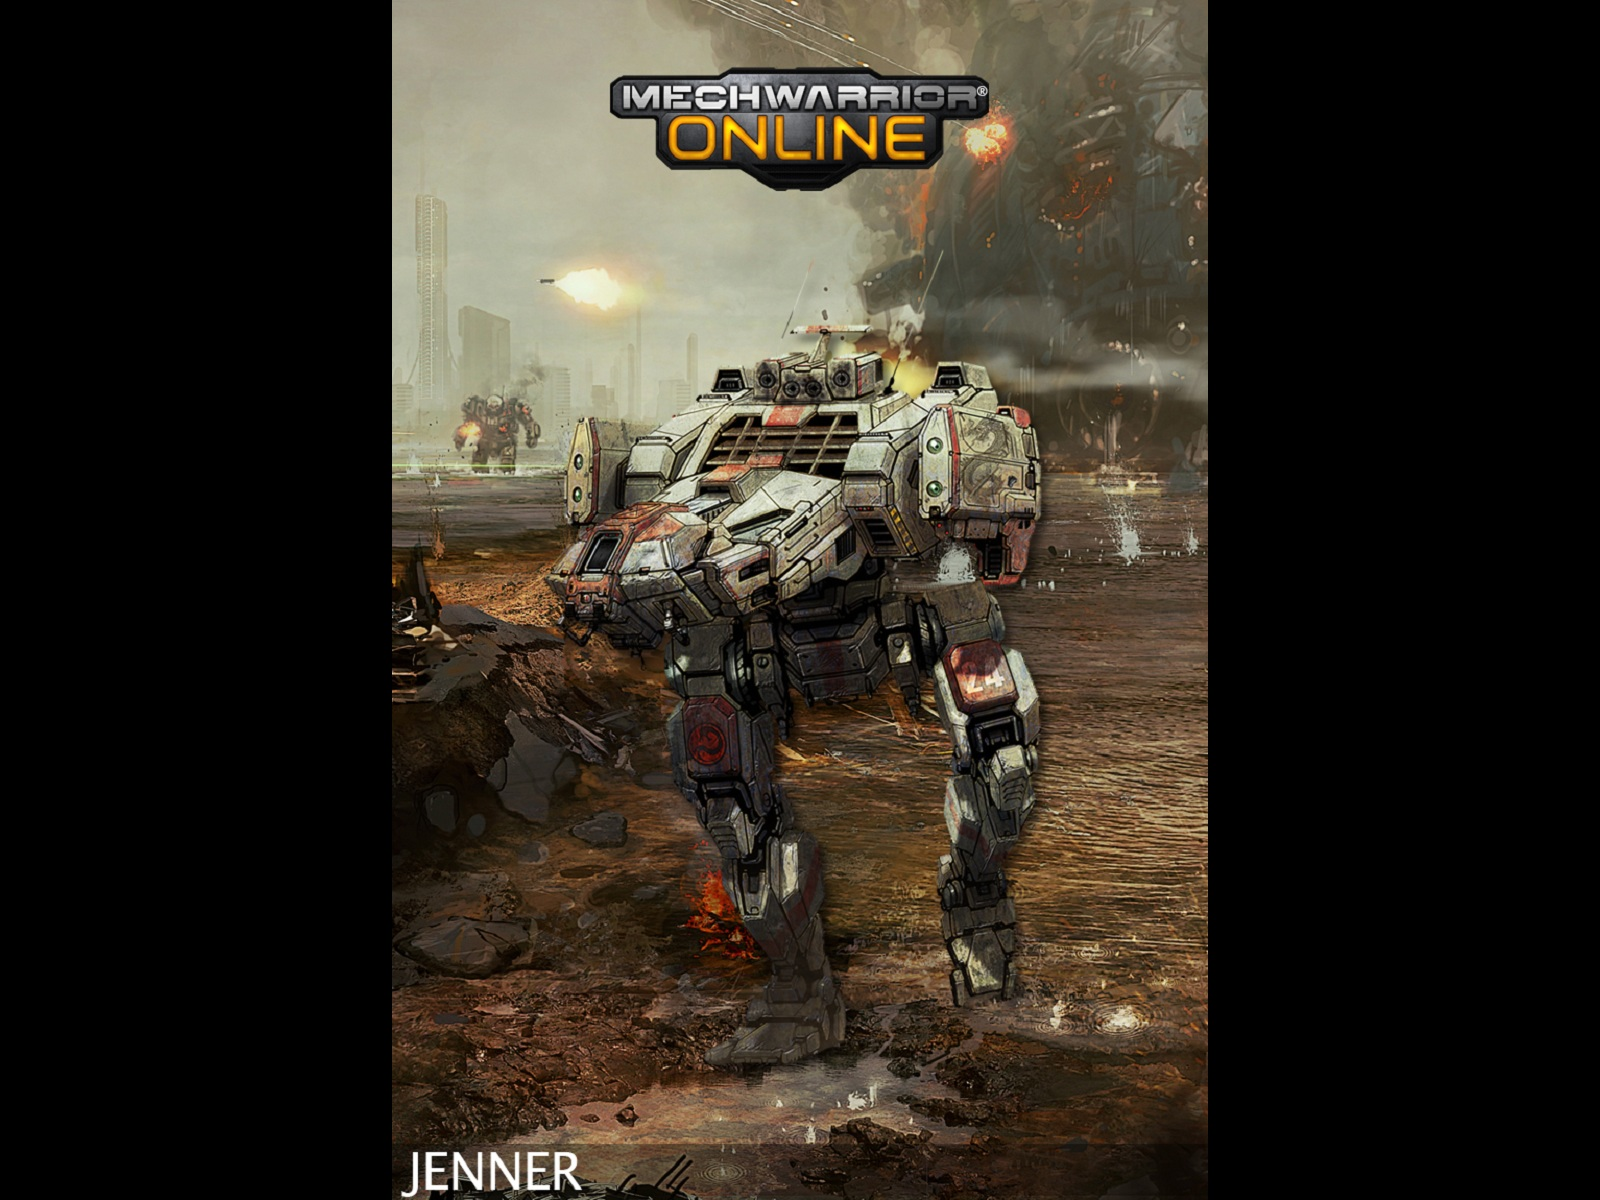 MechWarrior Online Wallpaper Gallery   Best Game Wallpapers 1600x1200